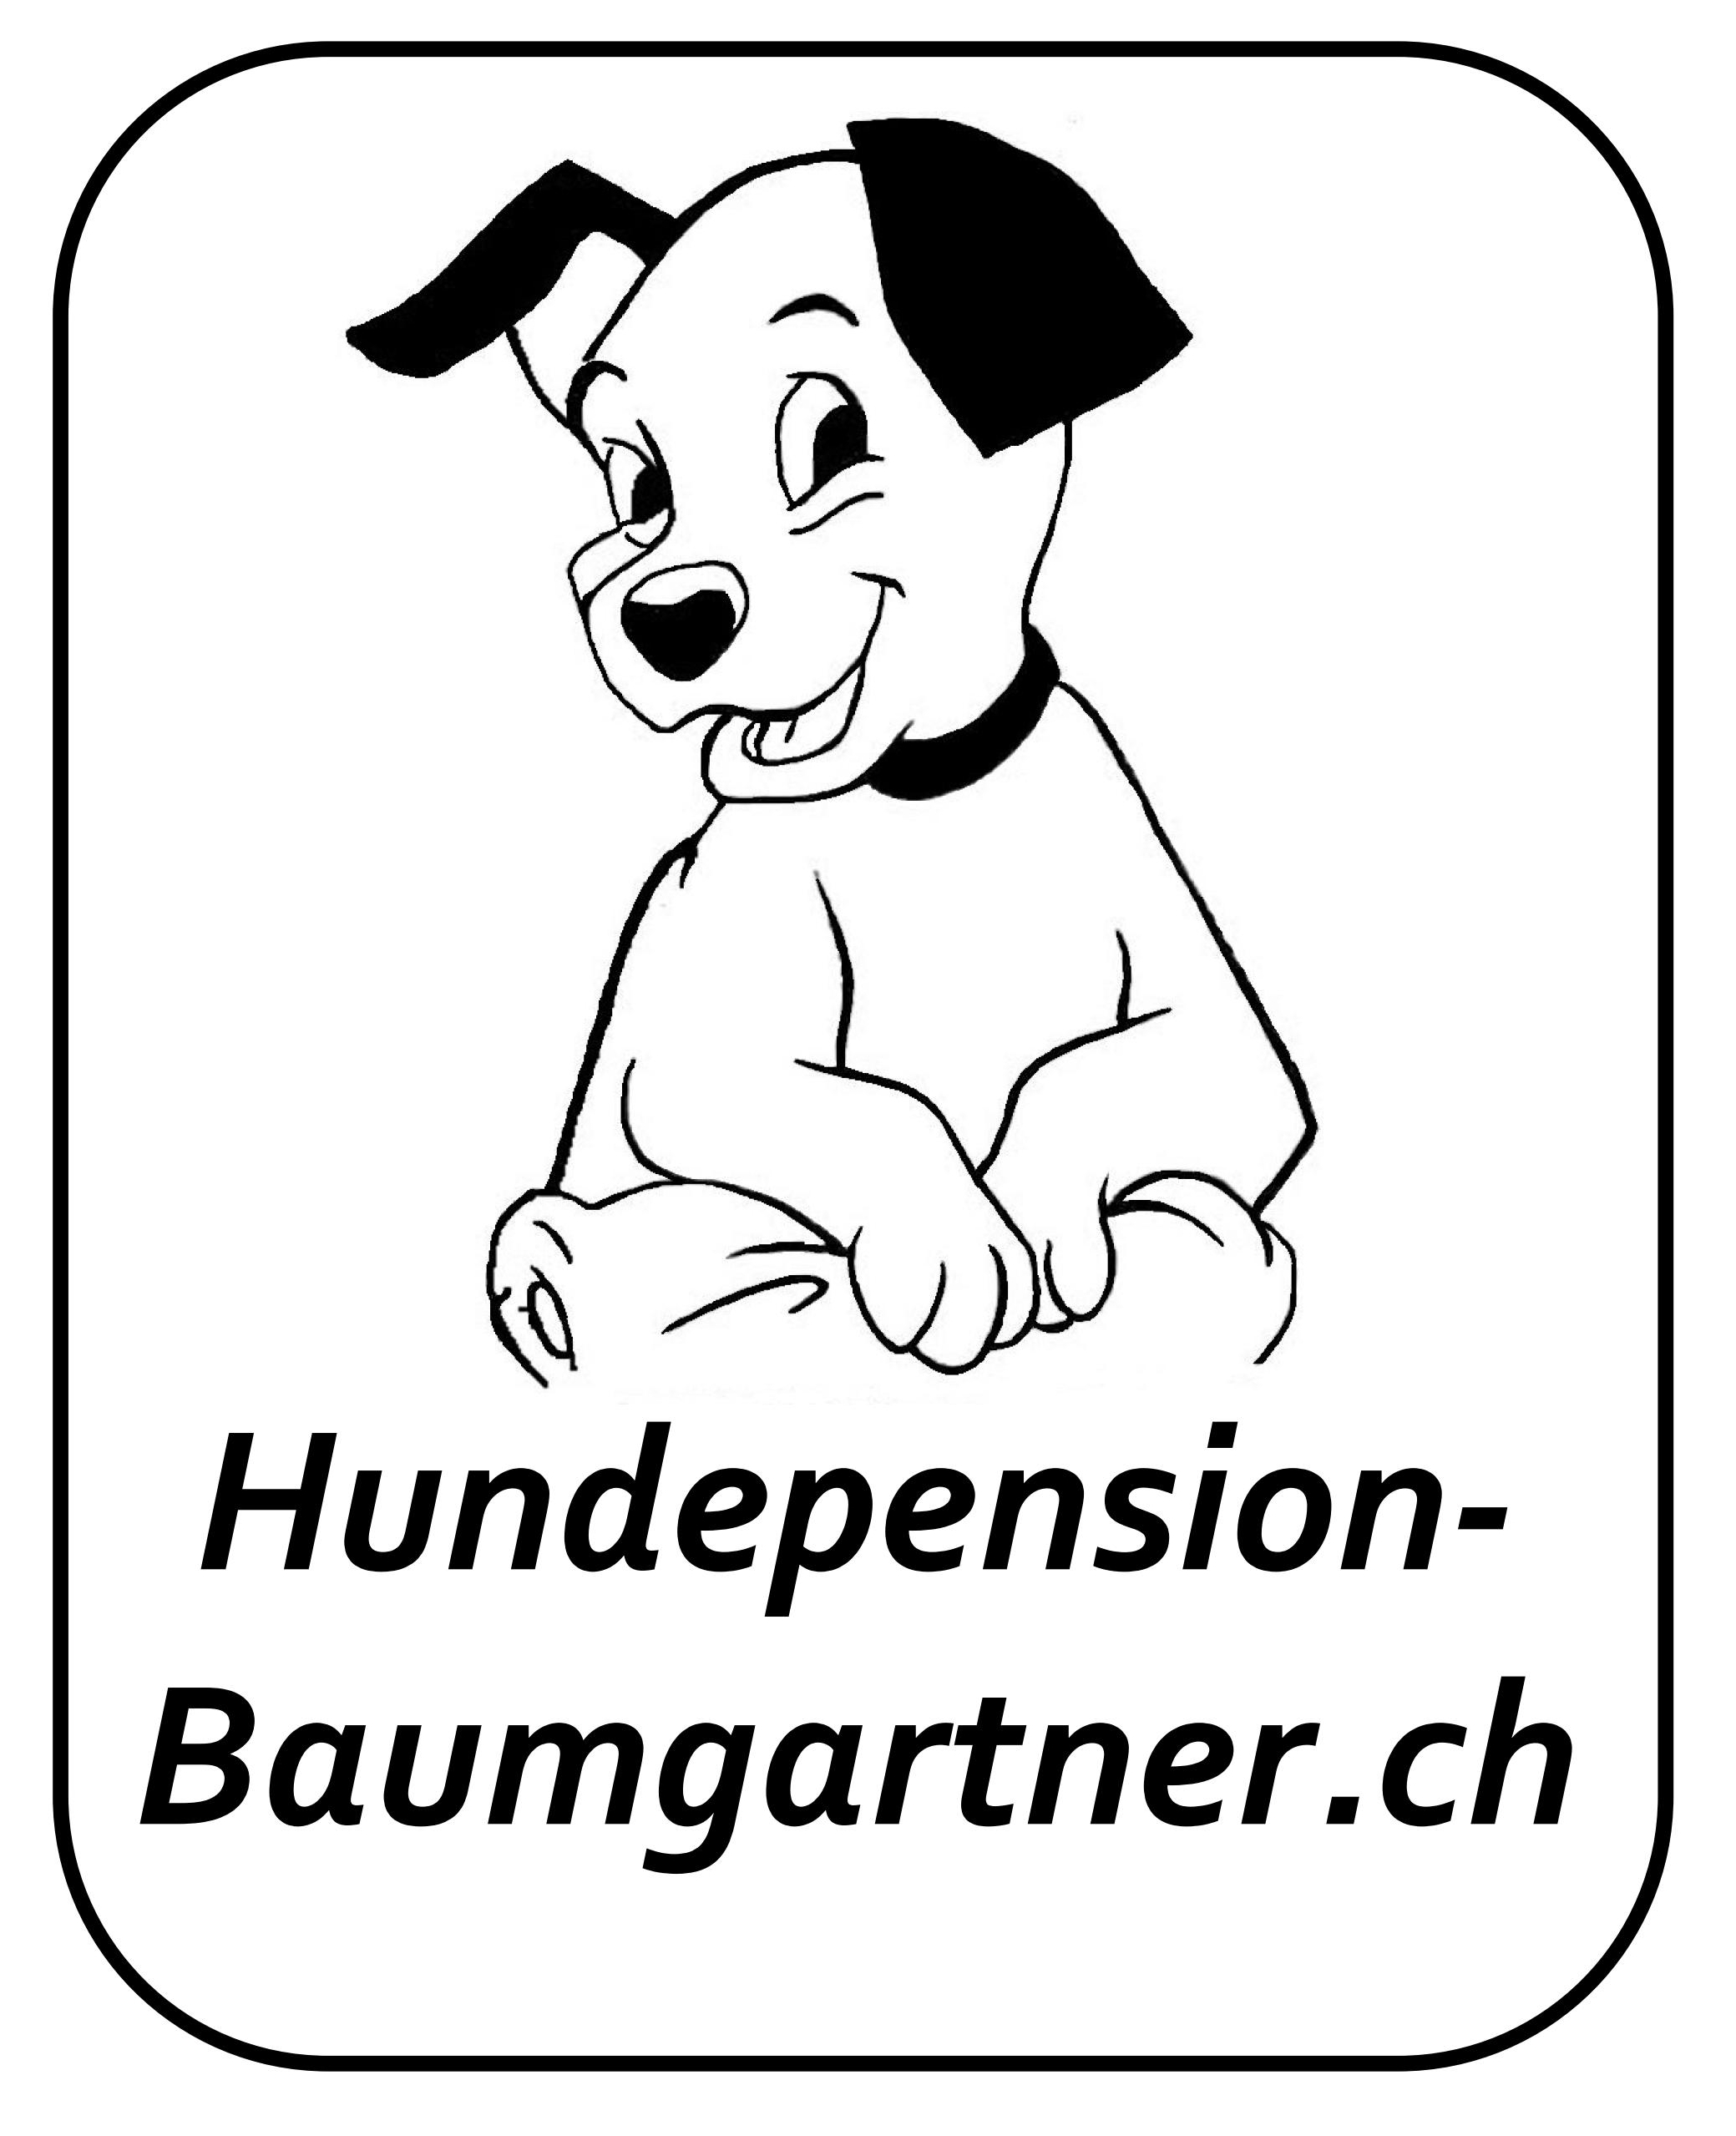 Hundepension-Baumgartner